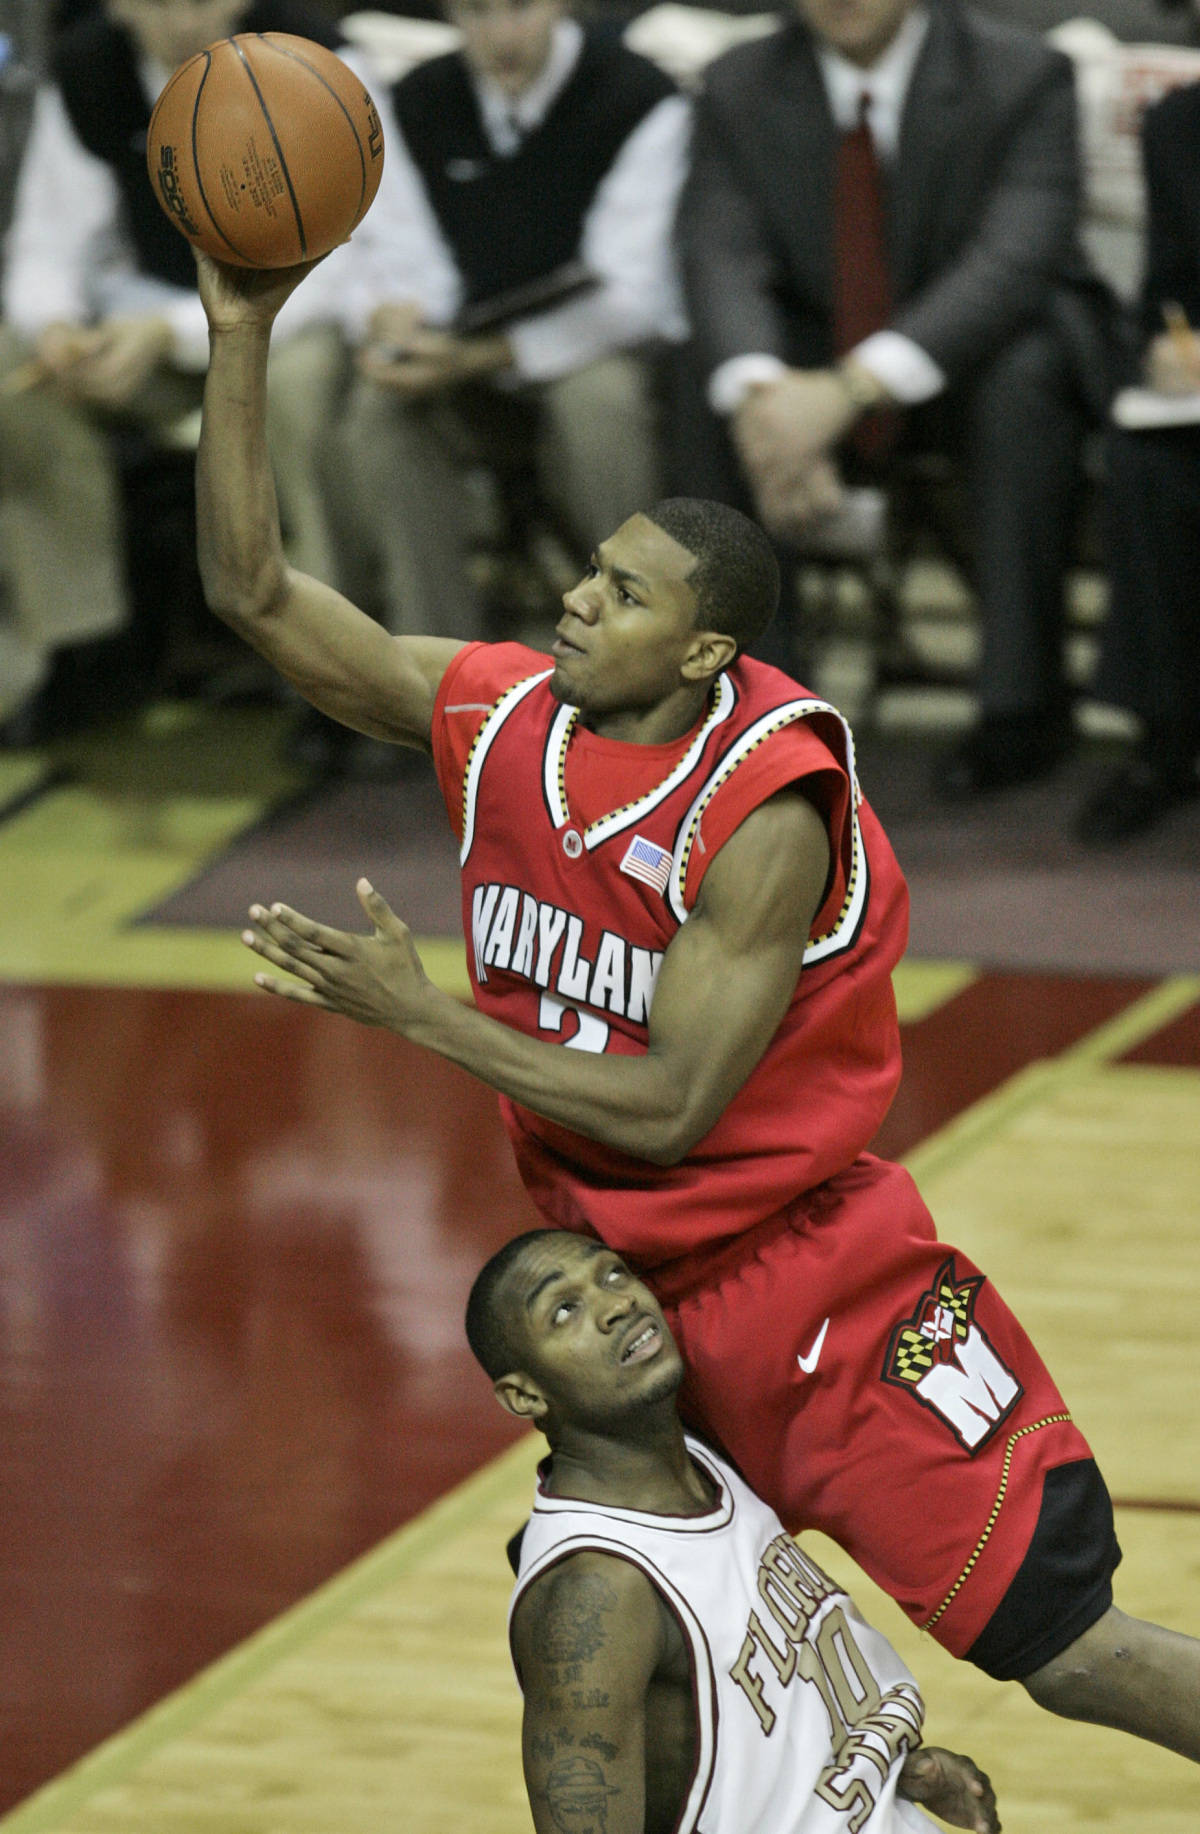 Maryland's D. J. Strawberry, top, goes over Florida State's Ralph Mims during the second half of a basketball game Tuesday, Jan. 30, 2007, in Tallahassee, Fla.(AP Photo/Phil Coale)